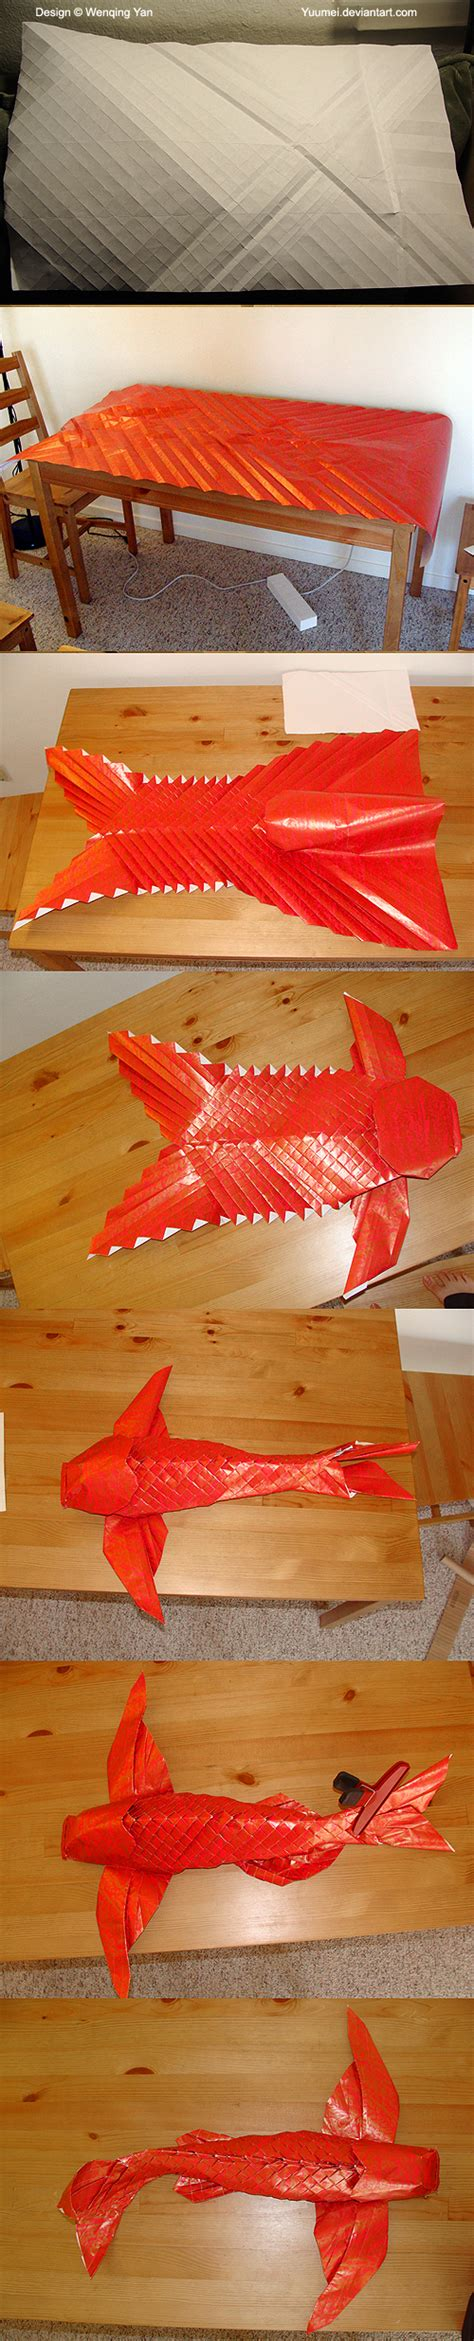 How To Make An Origami Koi Fish Step By Step - origami winged koi process by yuumei on deviantart